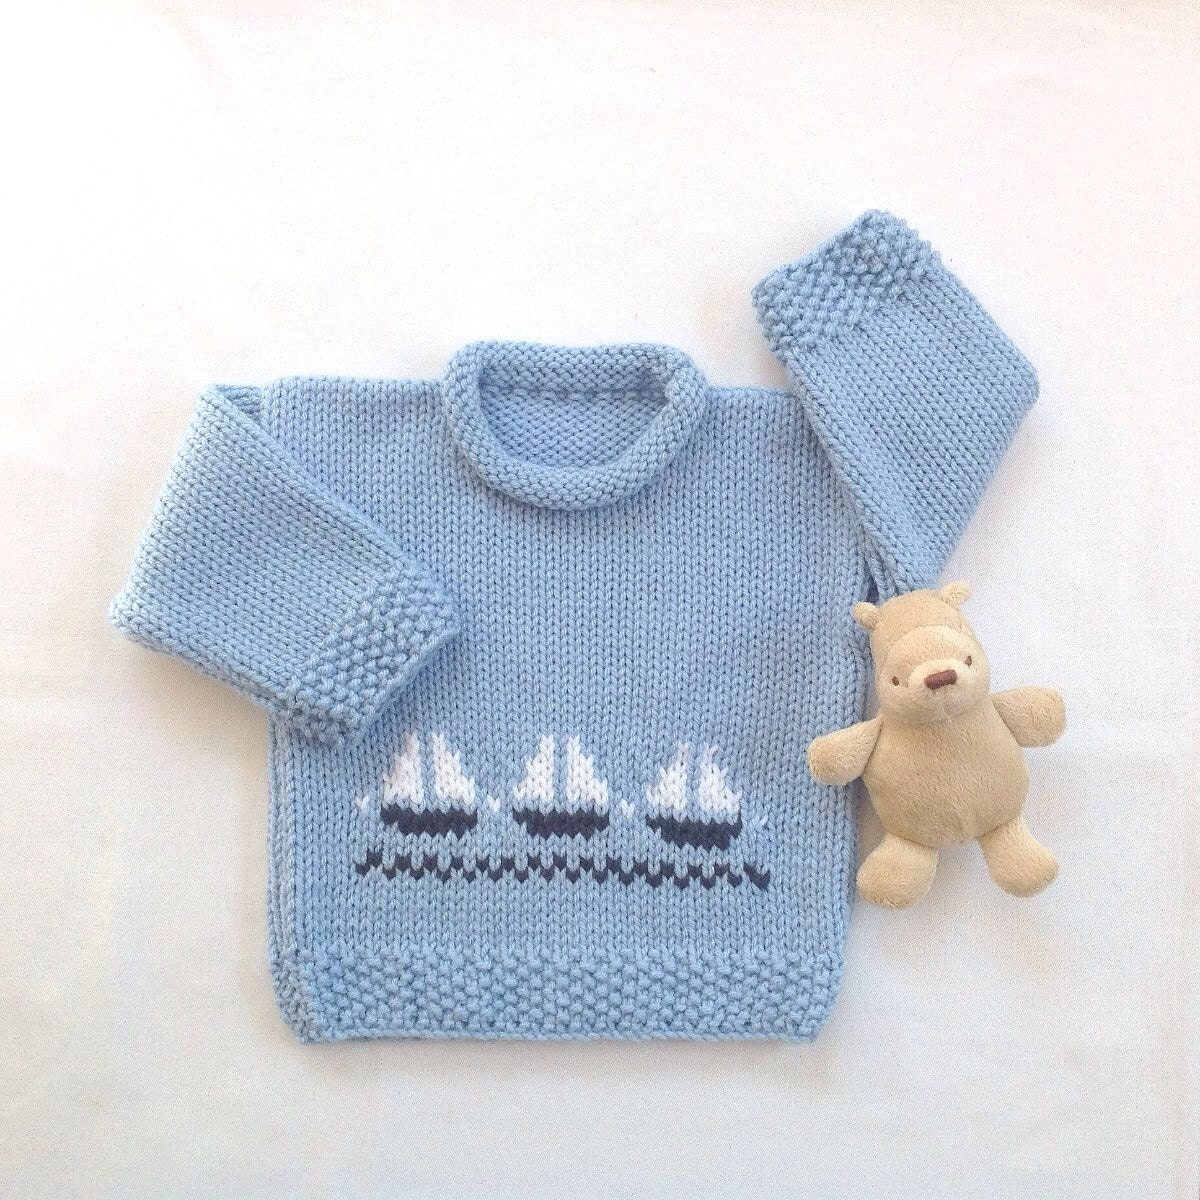 Knitting Pattern Baby Boy Jumper : Baby boy sweater - 6 to 12 months - Infant knit jumper - Childs knitted sweat...